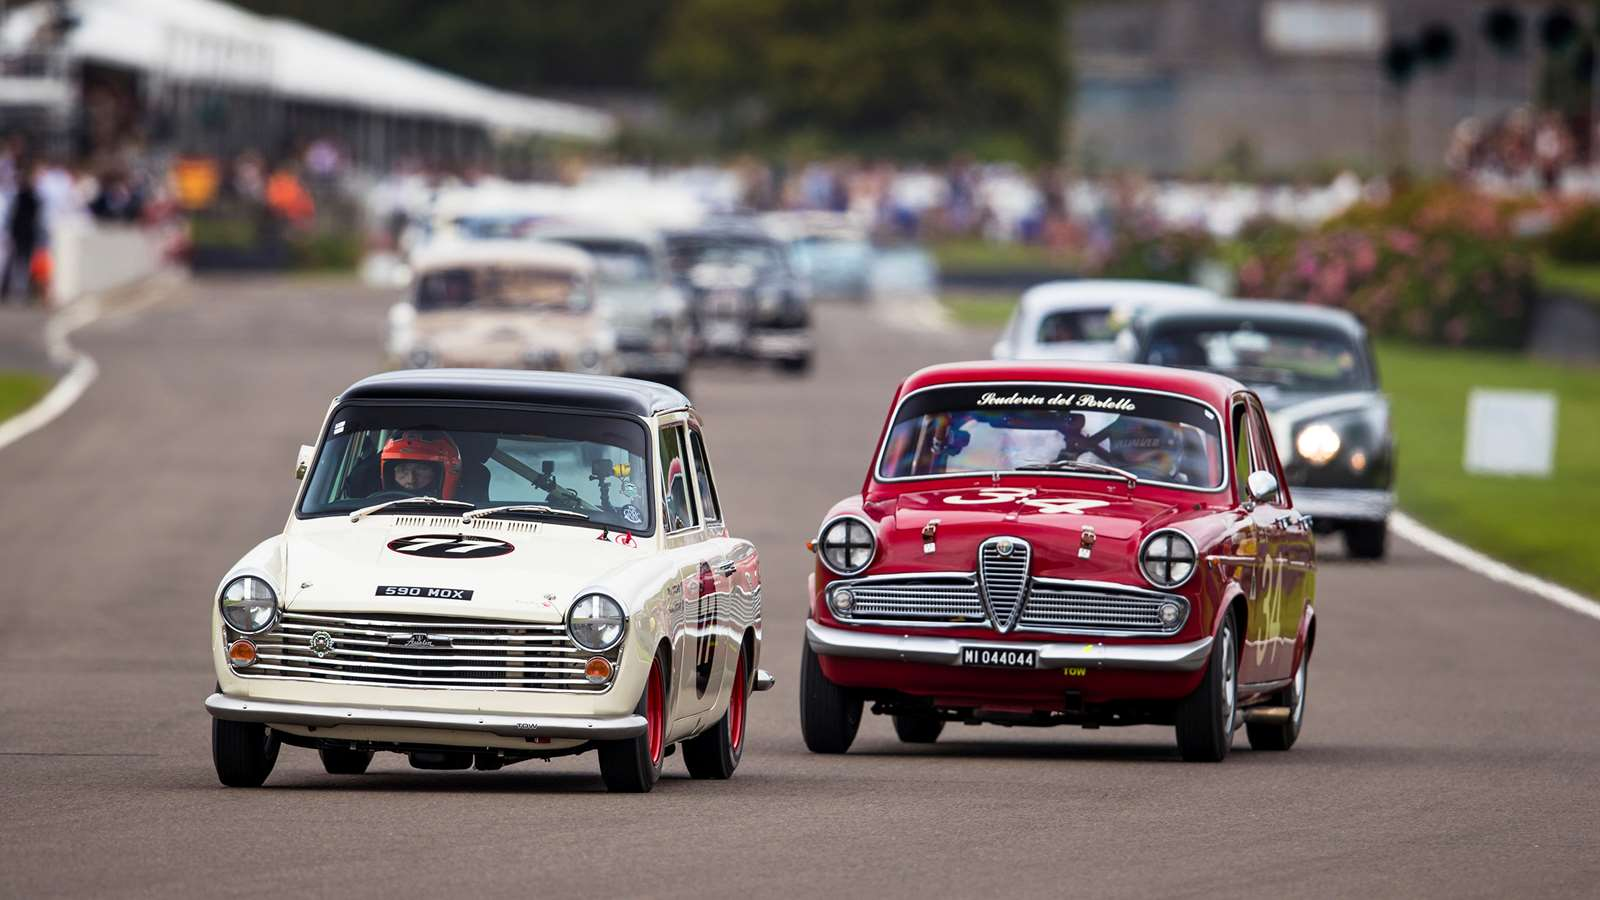 2018 Goodwood Revival Timetable Published